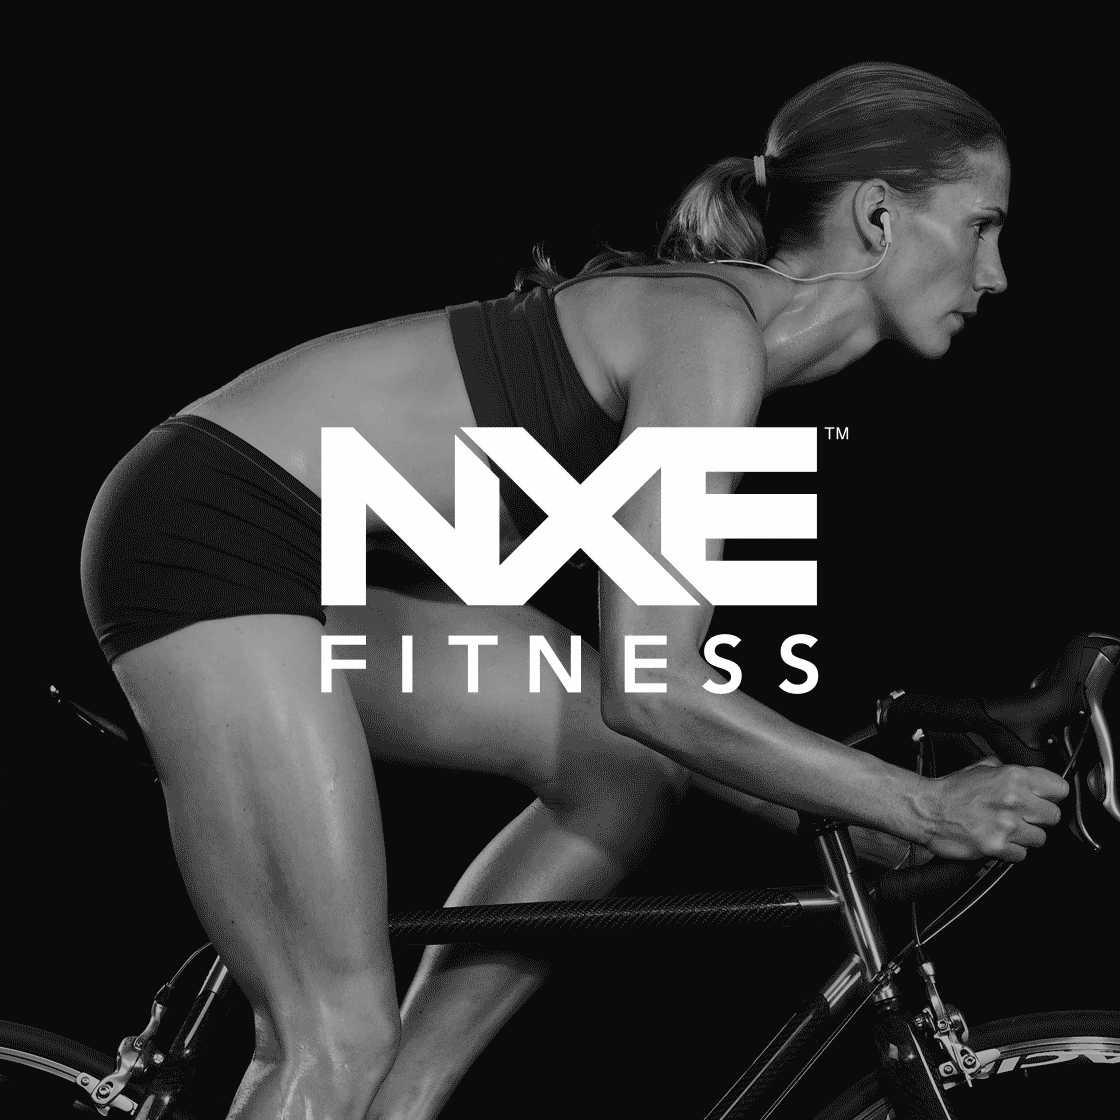 <strong>Web Design</strong>. Website and branding concept for fitness startup NXE.